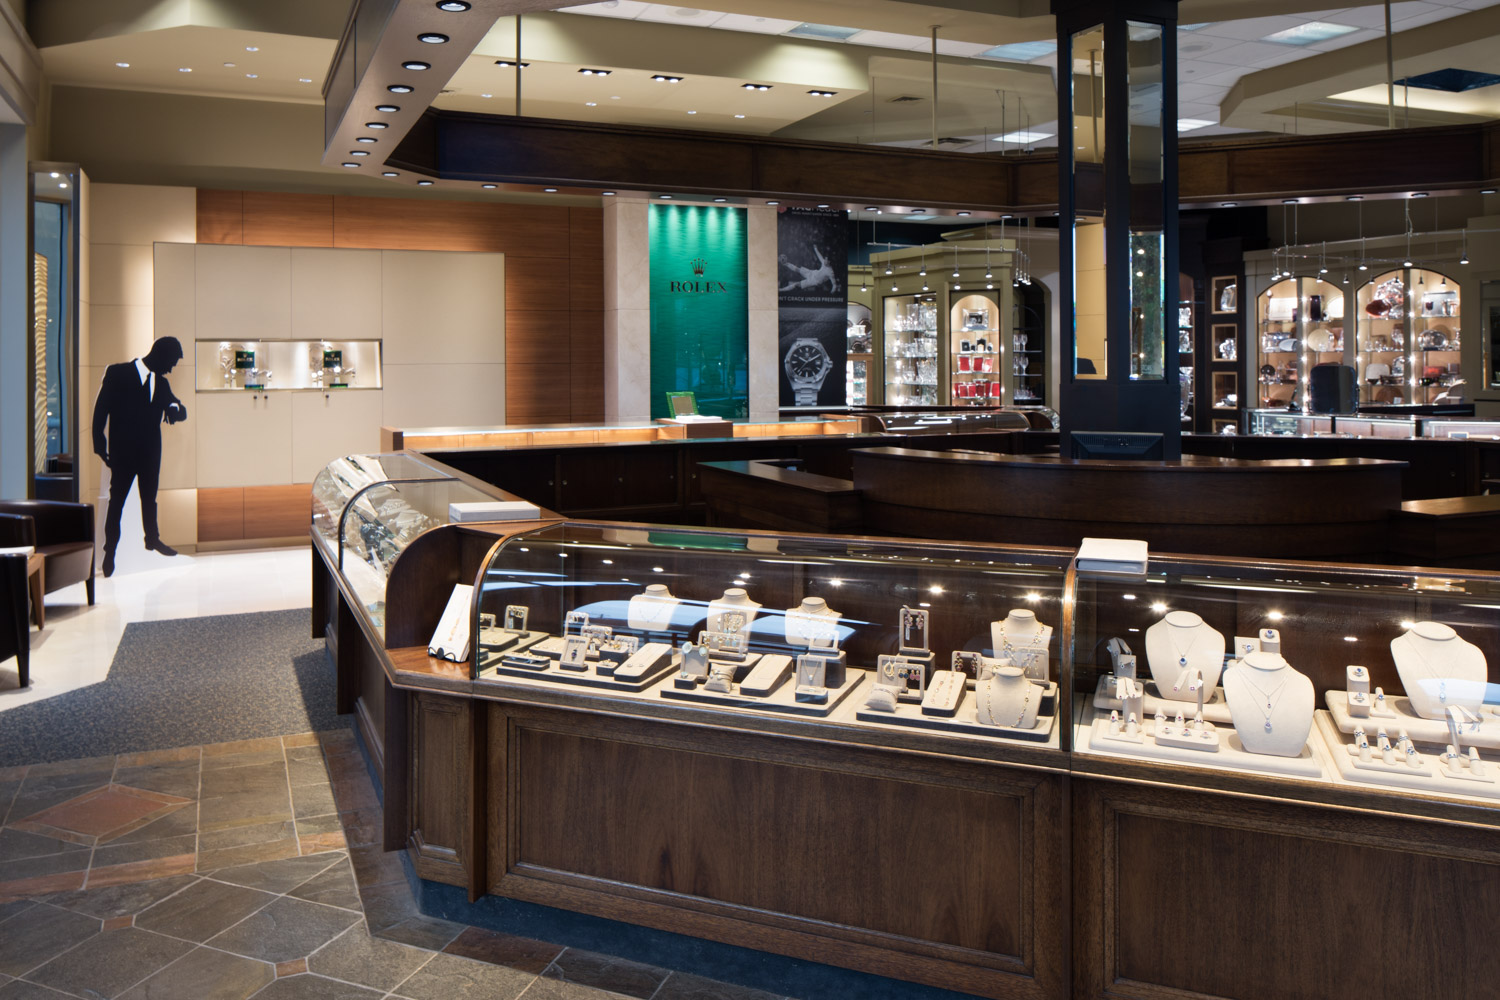 Brombergs - Birmingham AL Jewelry Store - Google Virtual Tour2515.jpg